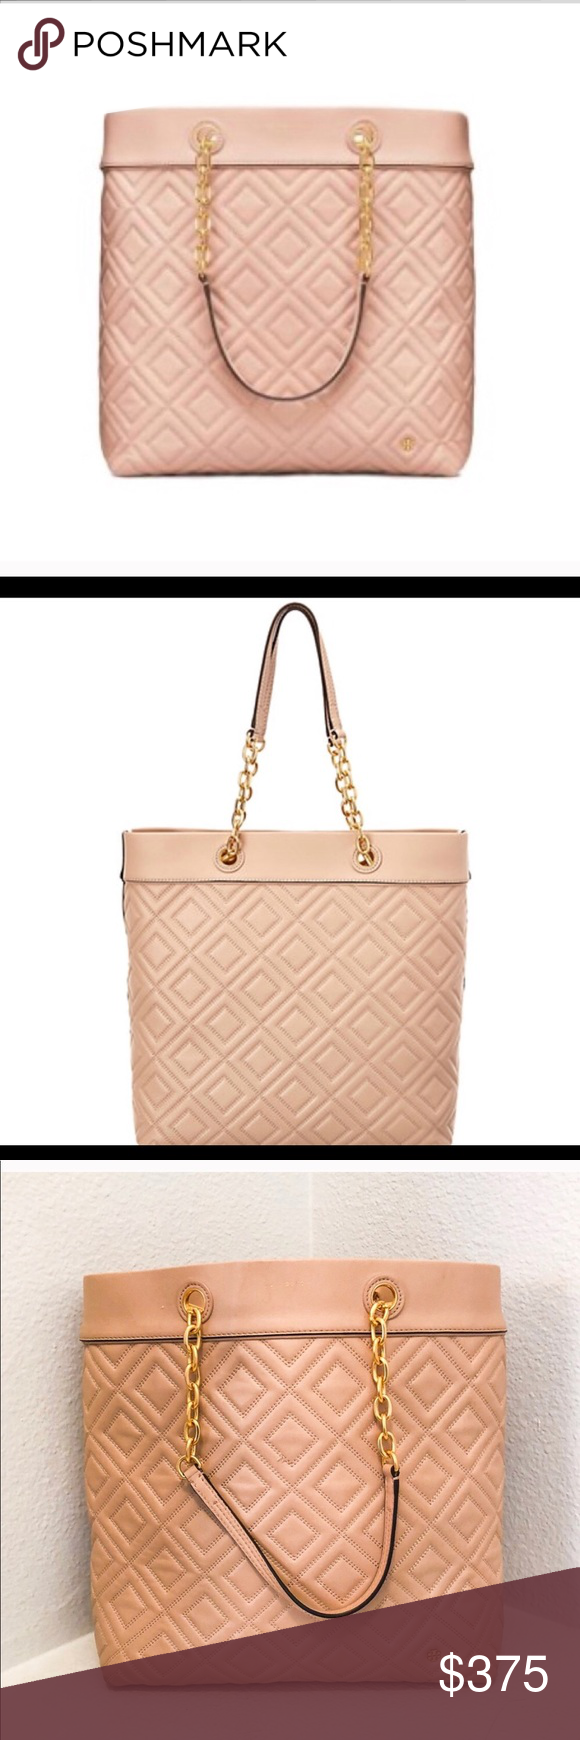 Tory Burch Fleming Tote Large New Mink